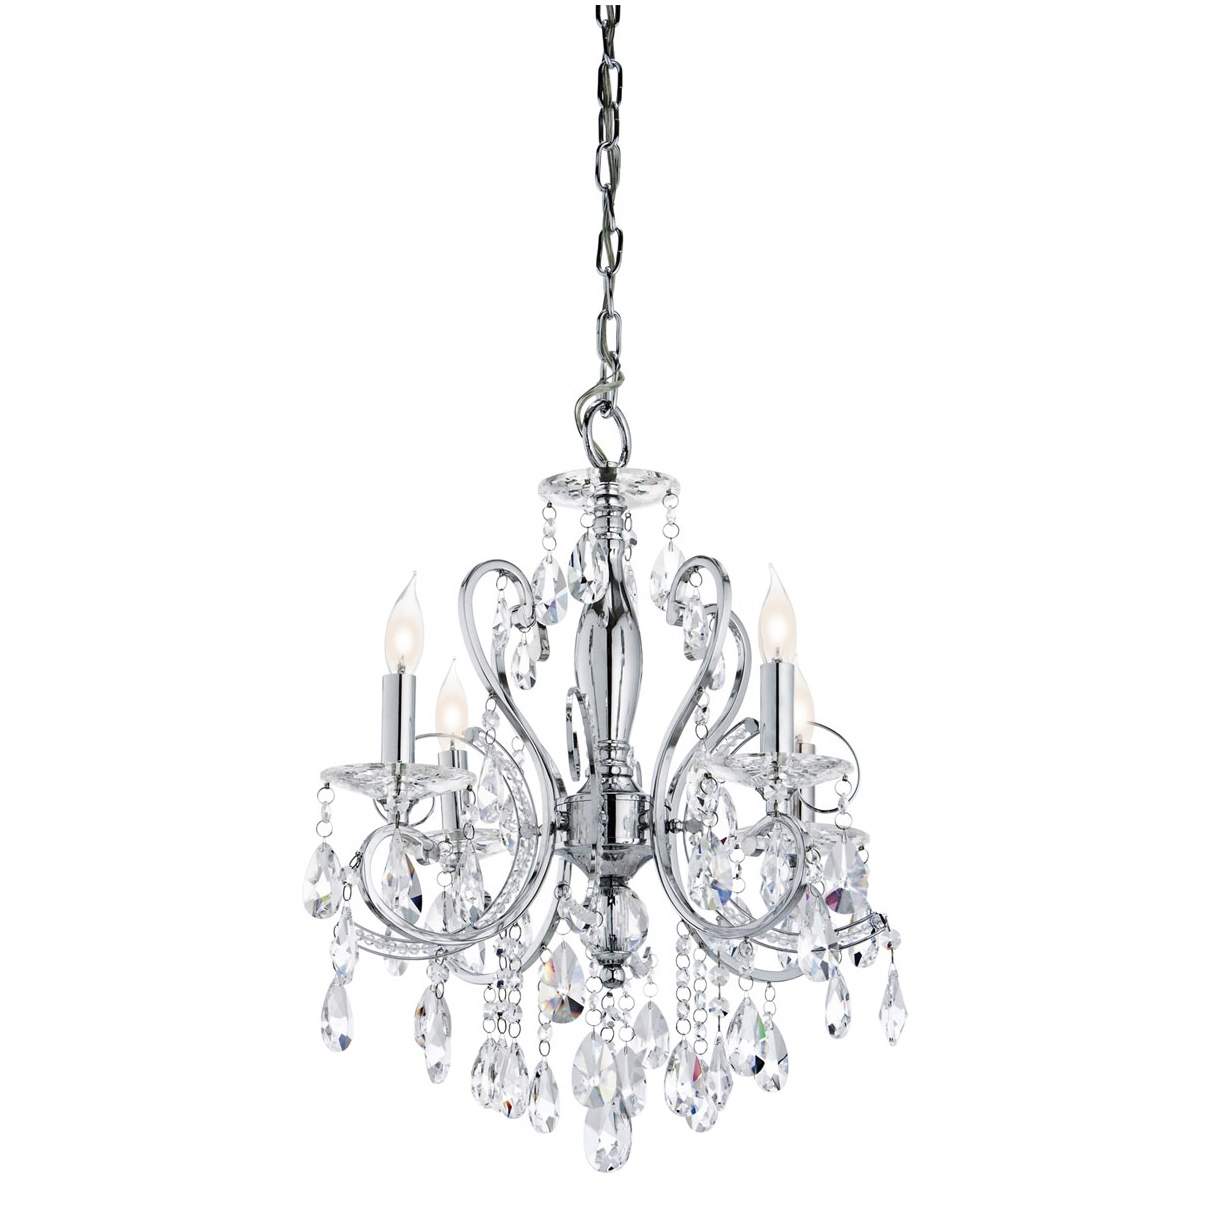 Outstanding Small Crystal Chandeliers For With Bedroom Between With Mini Crystal Chandeliers (Image 21 of 25)